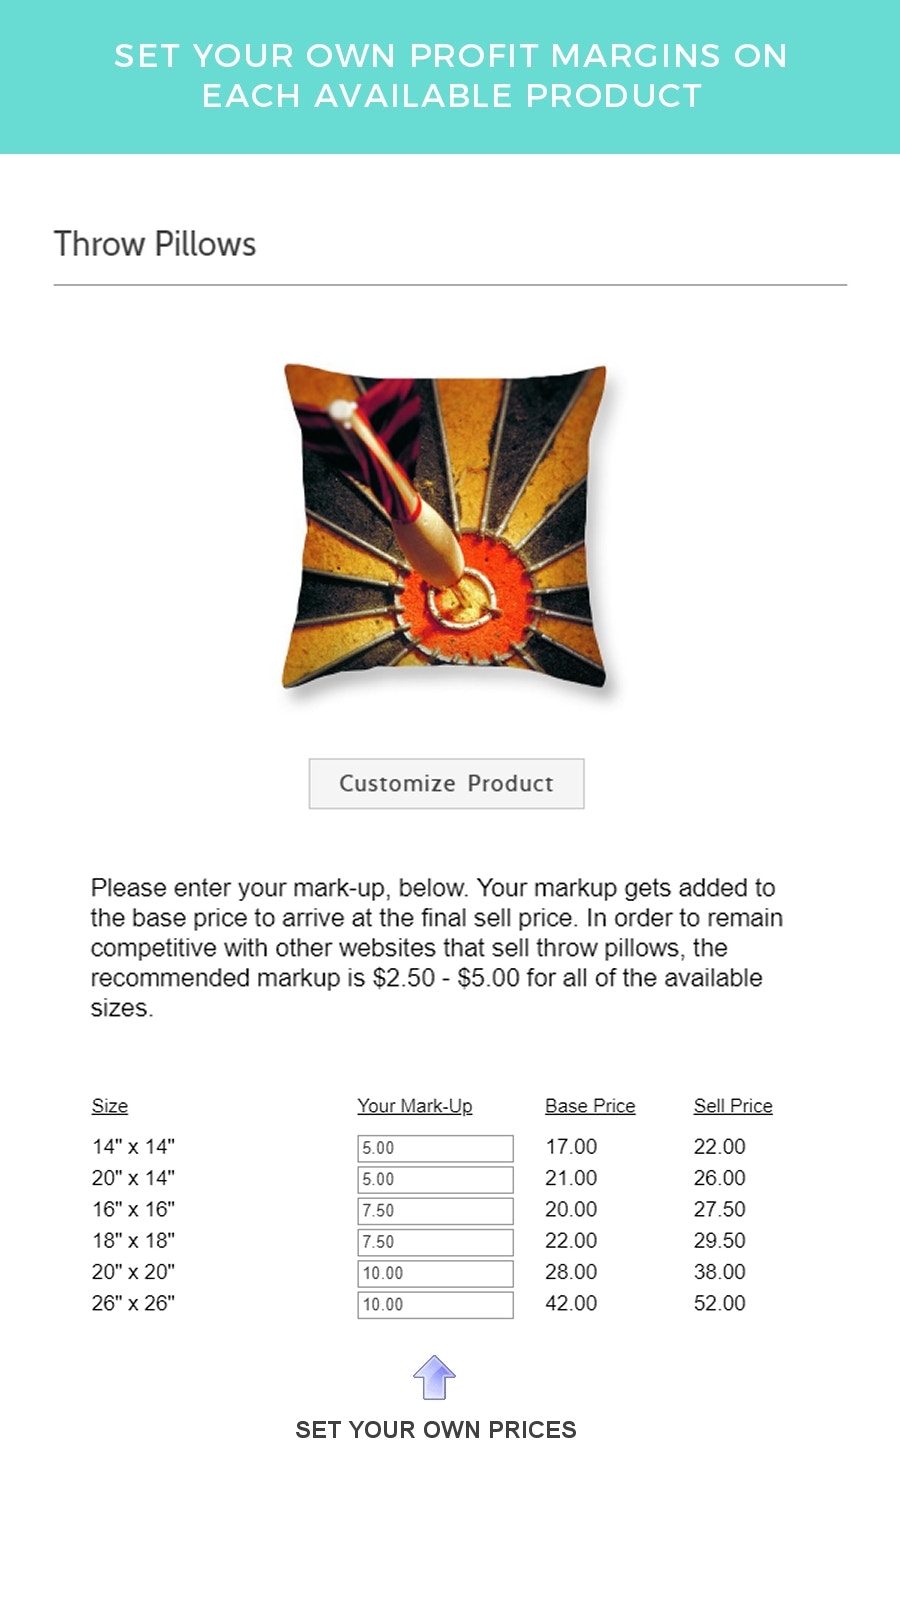 Set Your Own Prices for Each Available Product